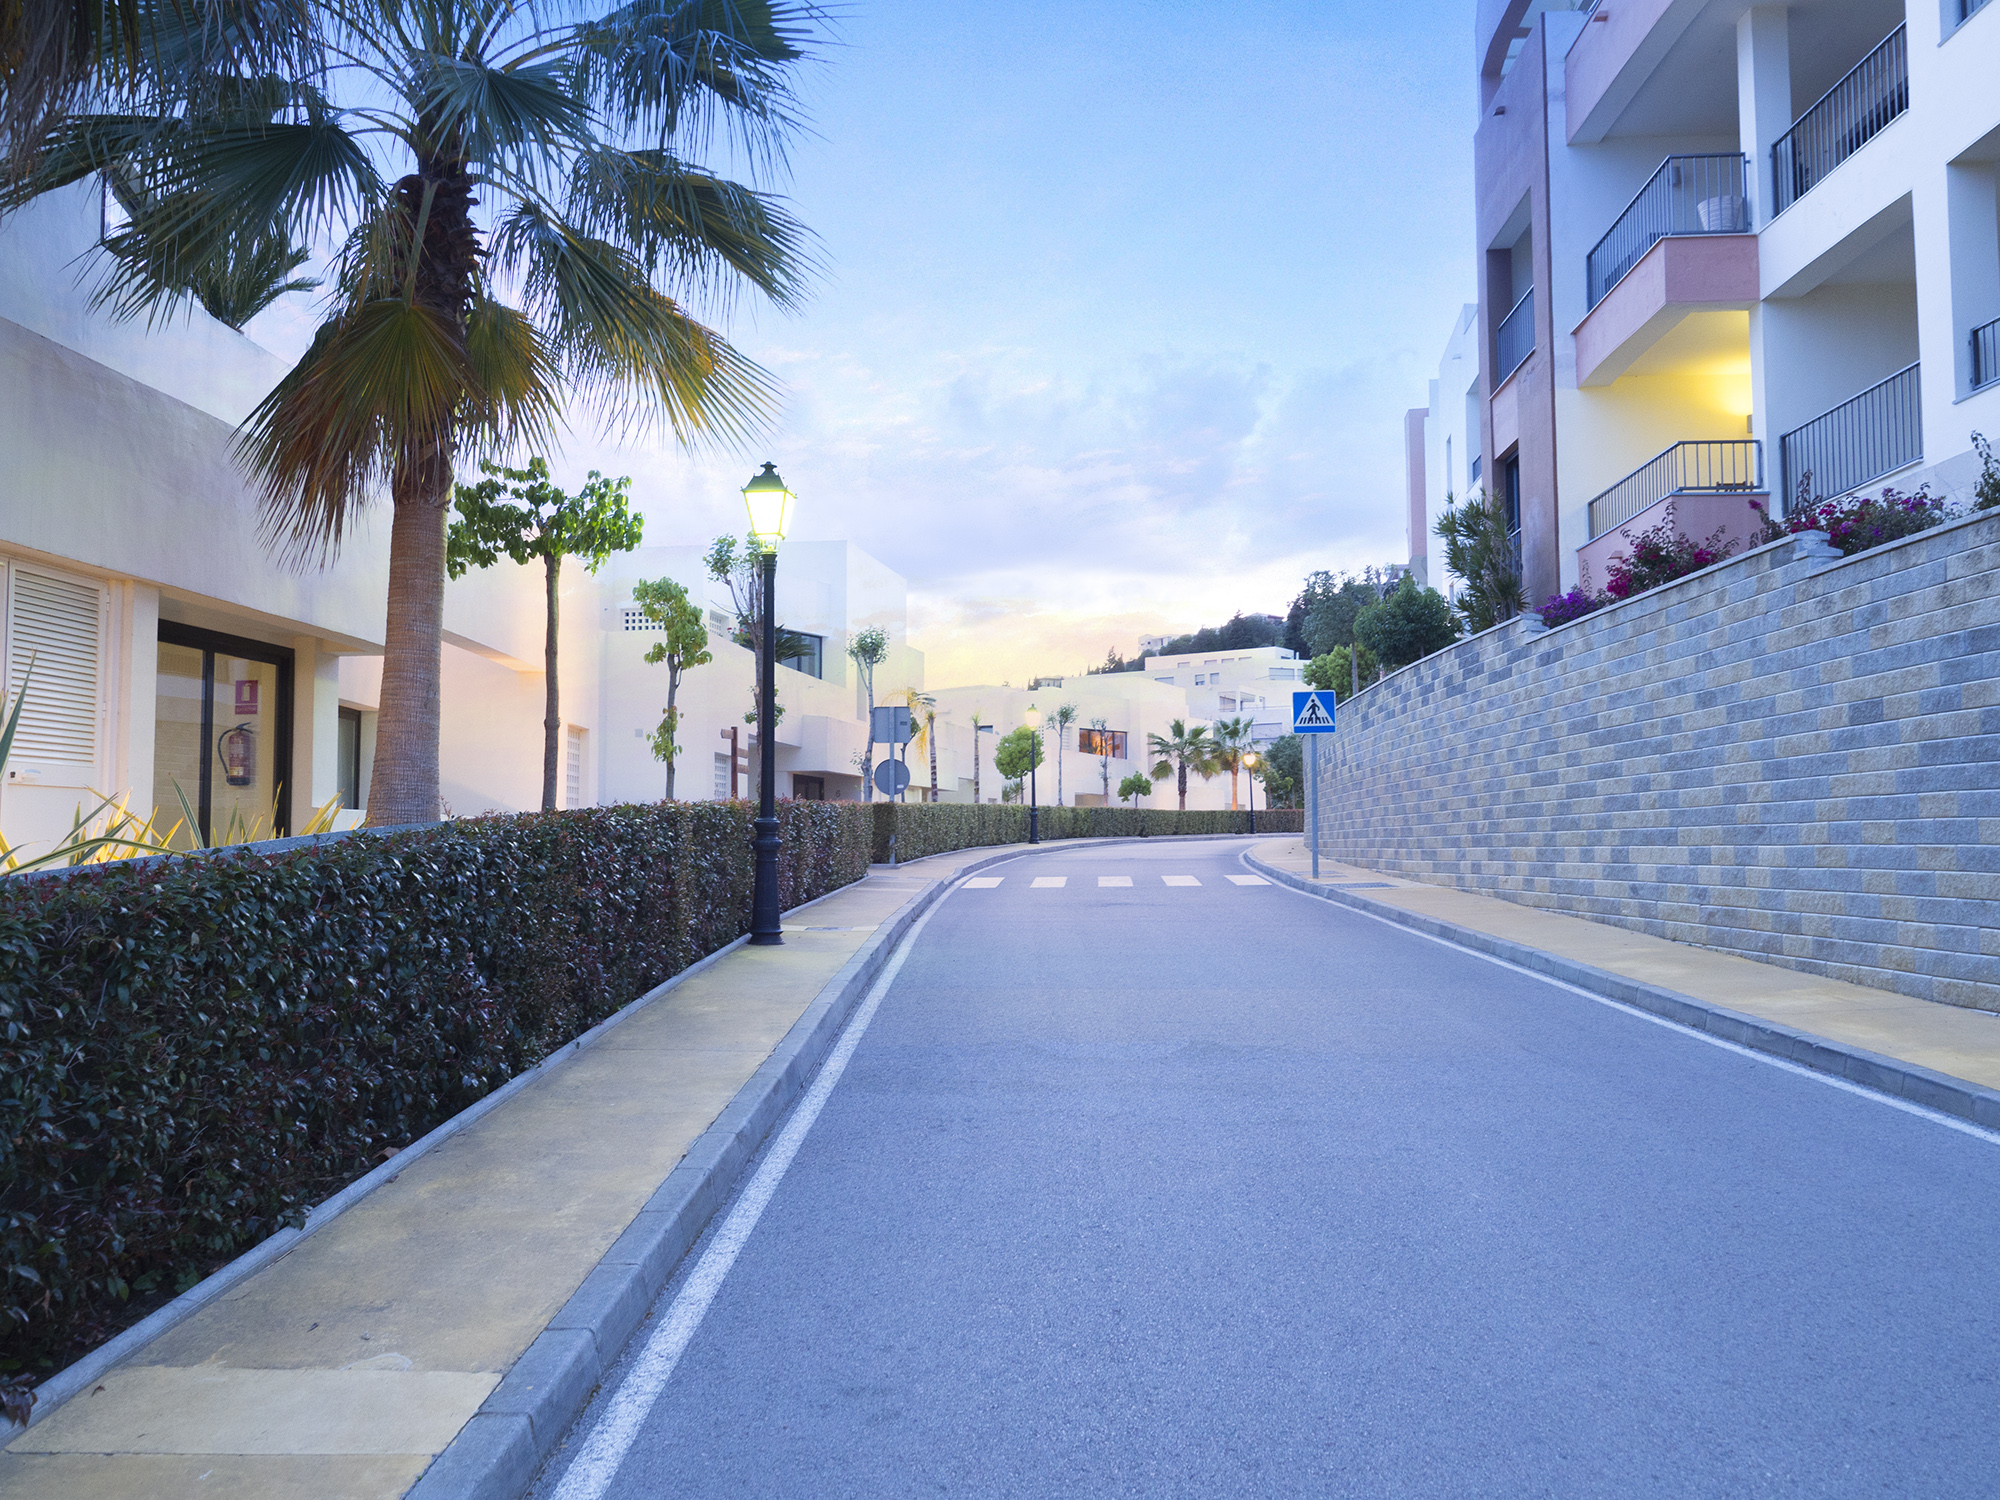 Samara Resort Marbella for rent WHUDAT